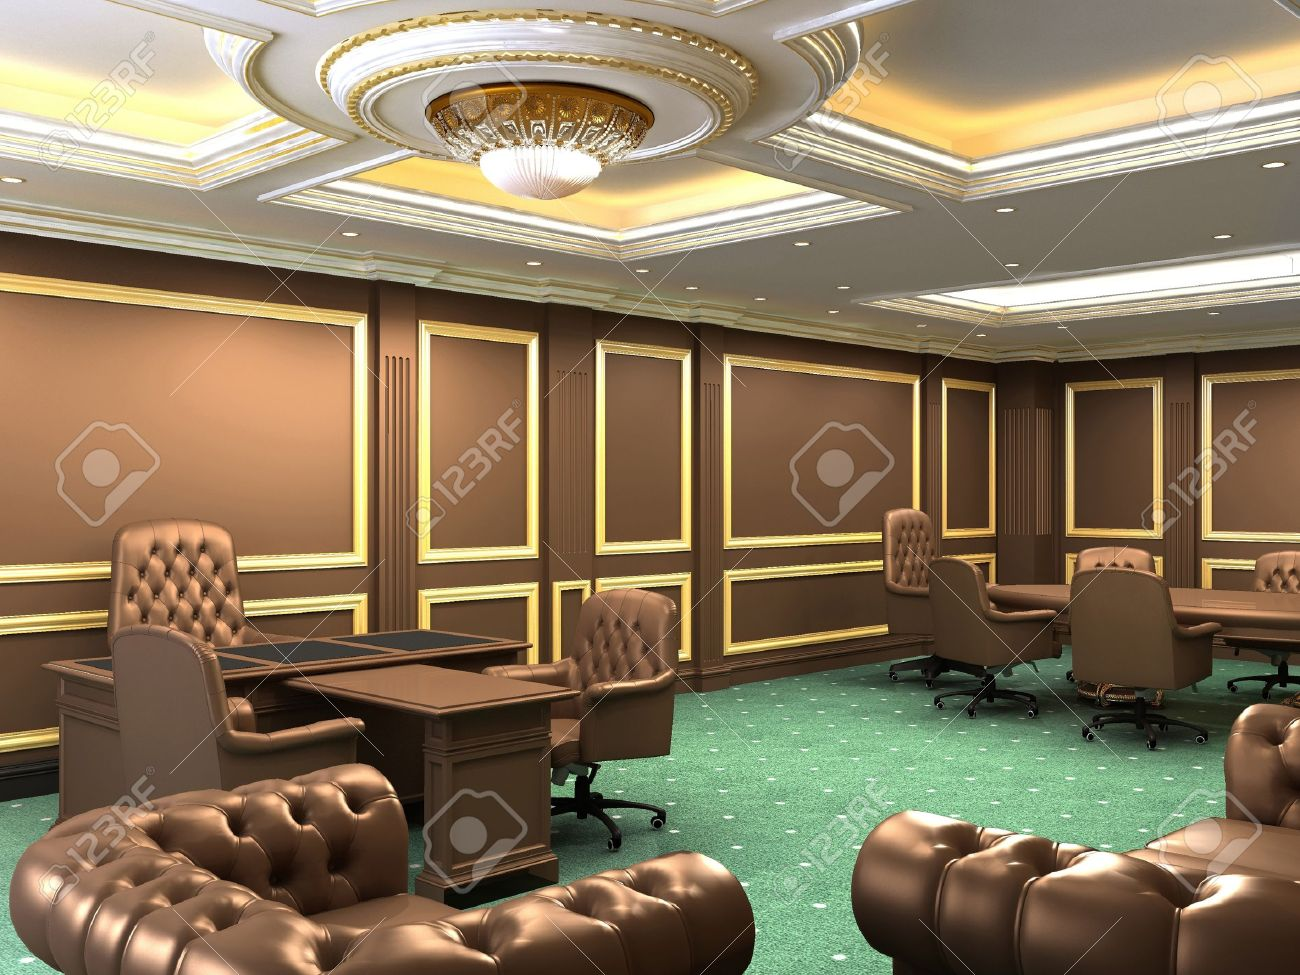 Interior Office Space, Royal Apartment With Luxury Furniture Stock ...